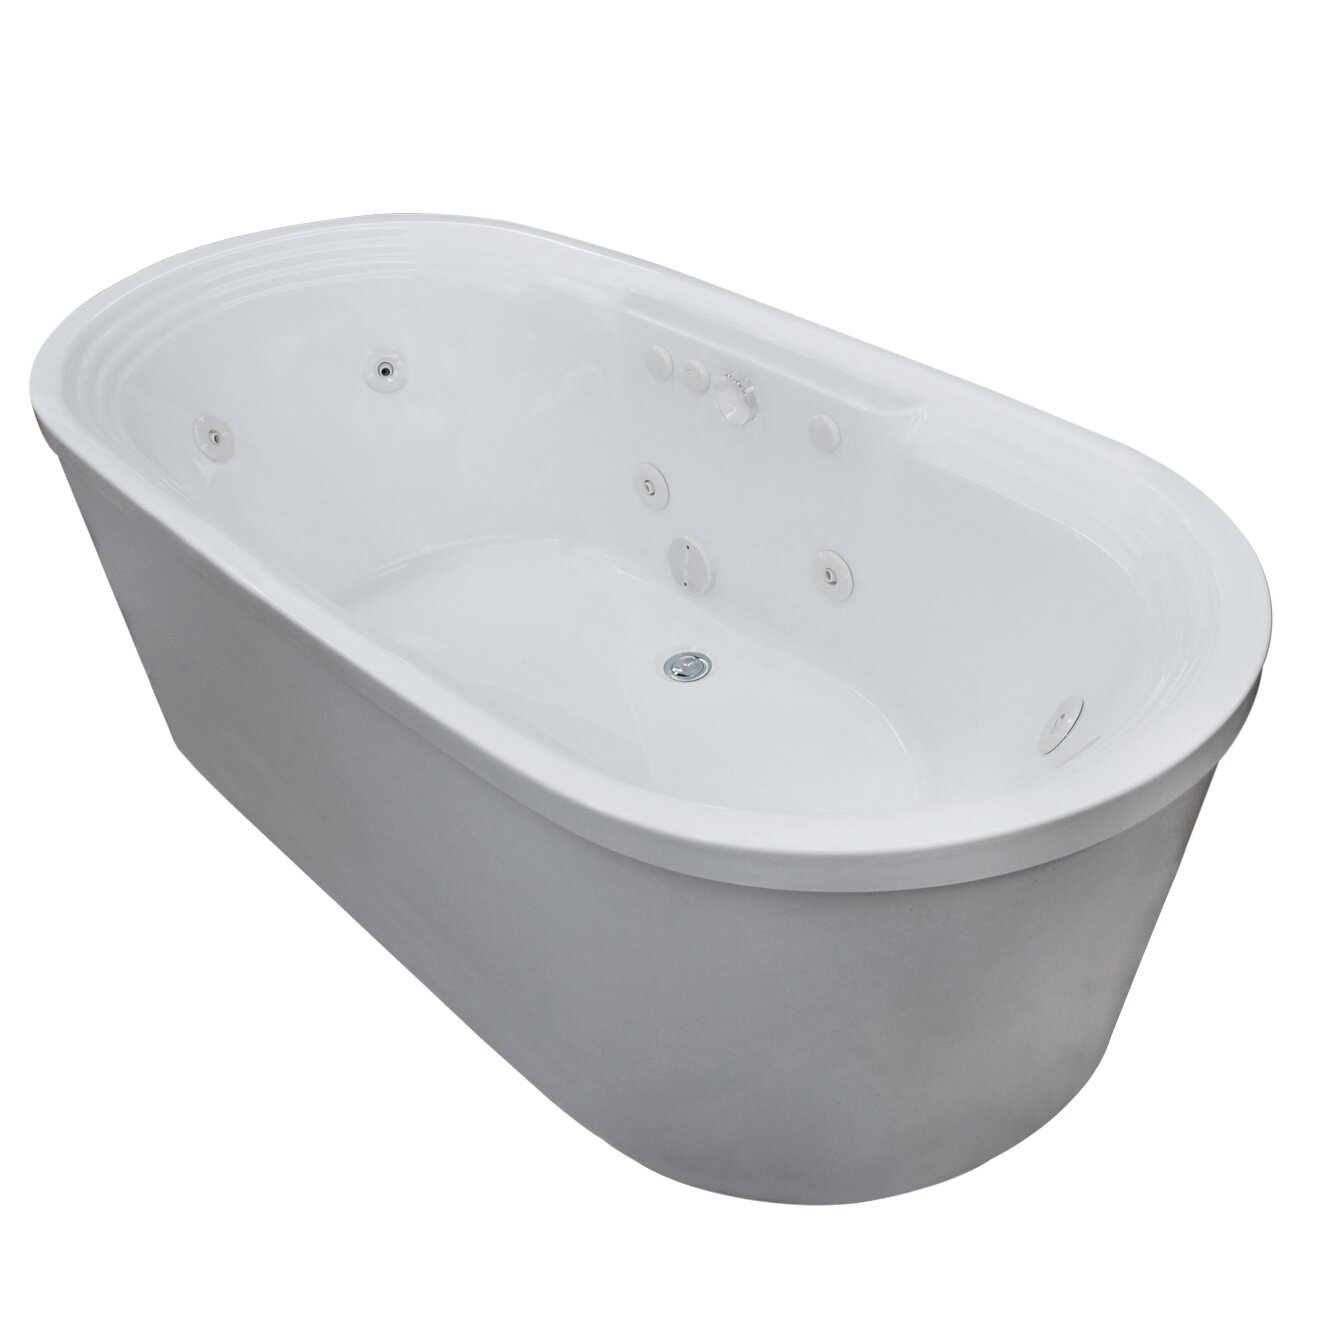 Spa Escapes Royal X Oval Freestanding Soaking Jetted